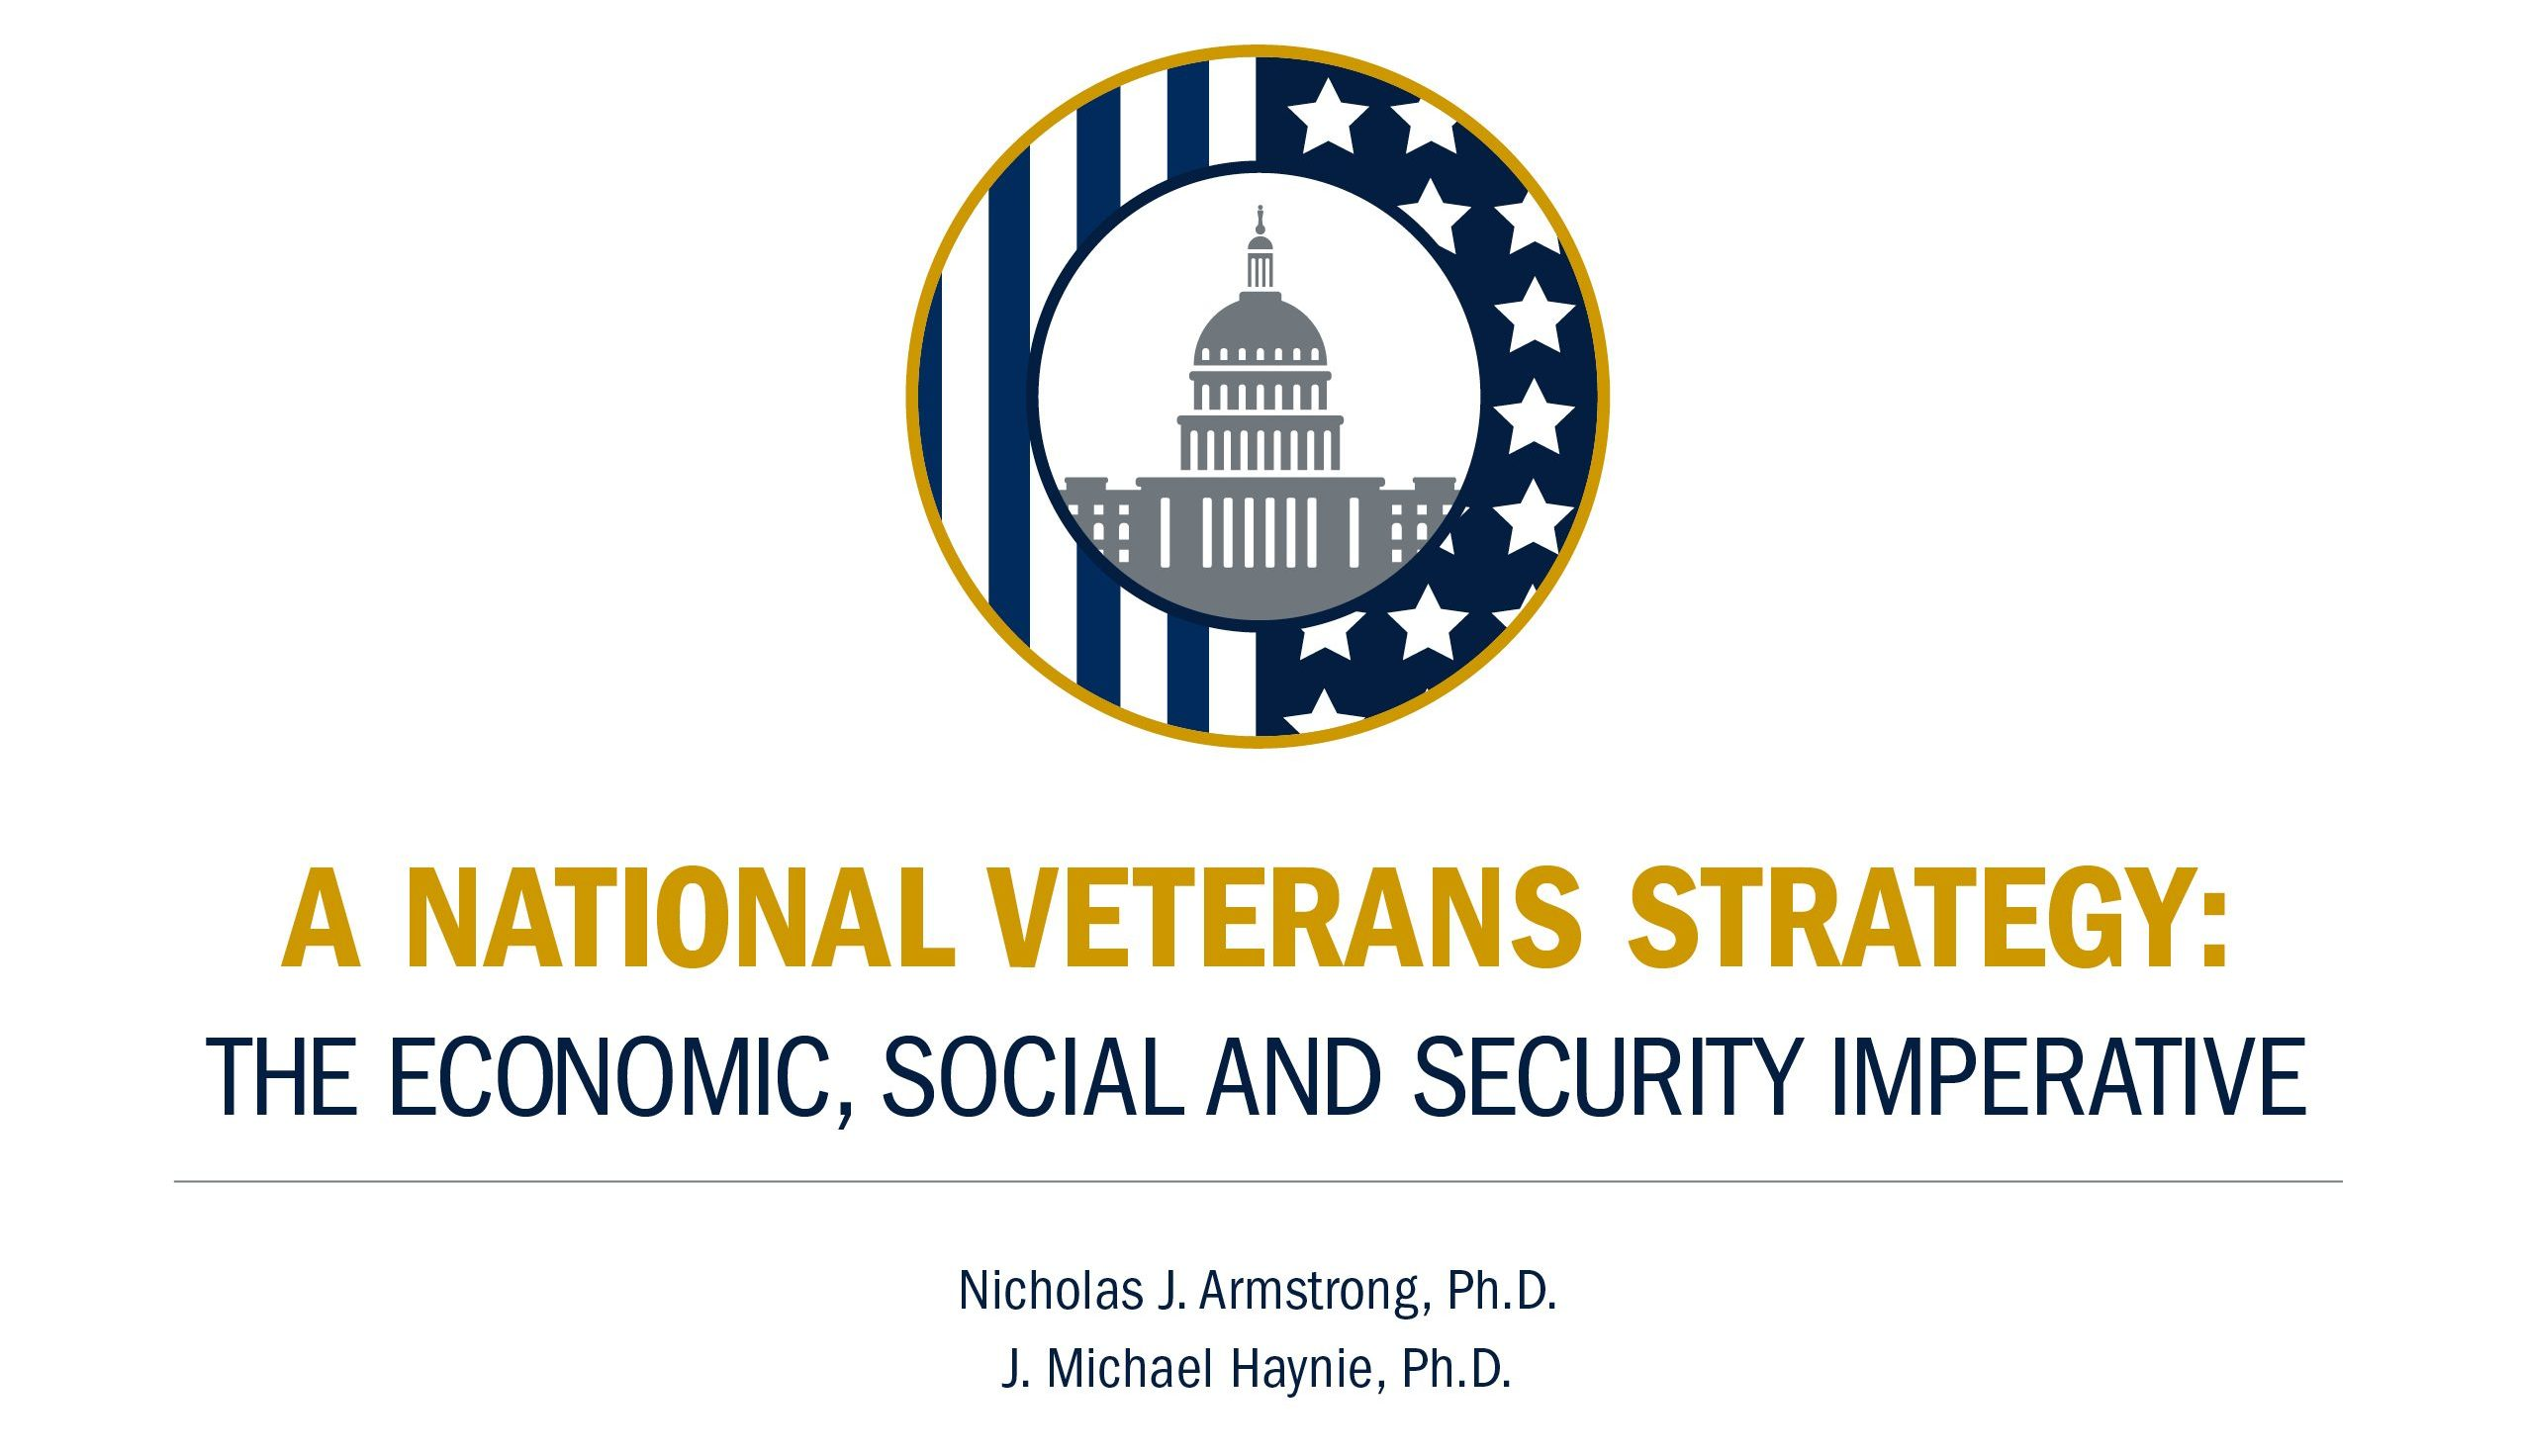 A National Veterans Strategy logo